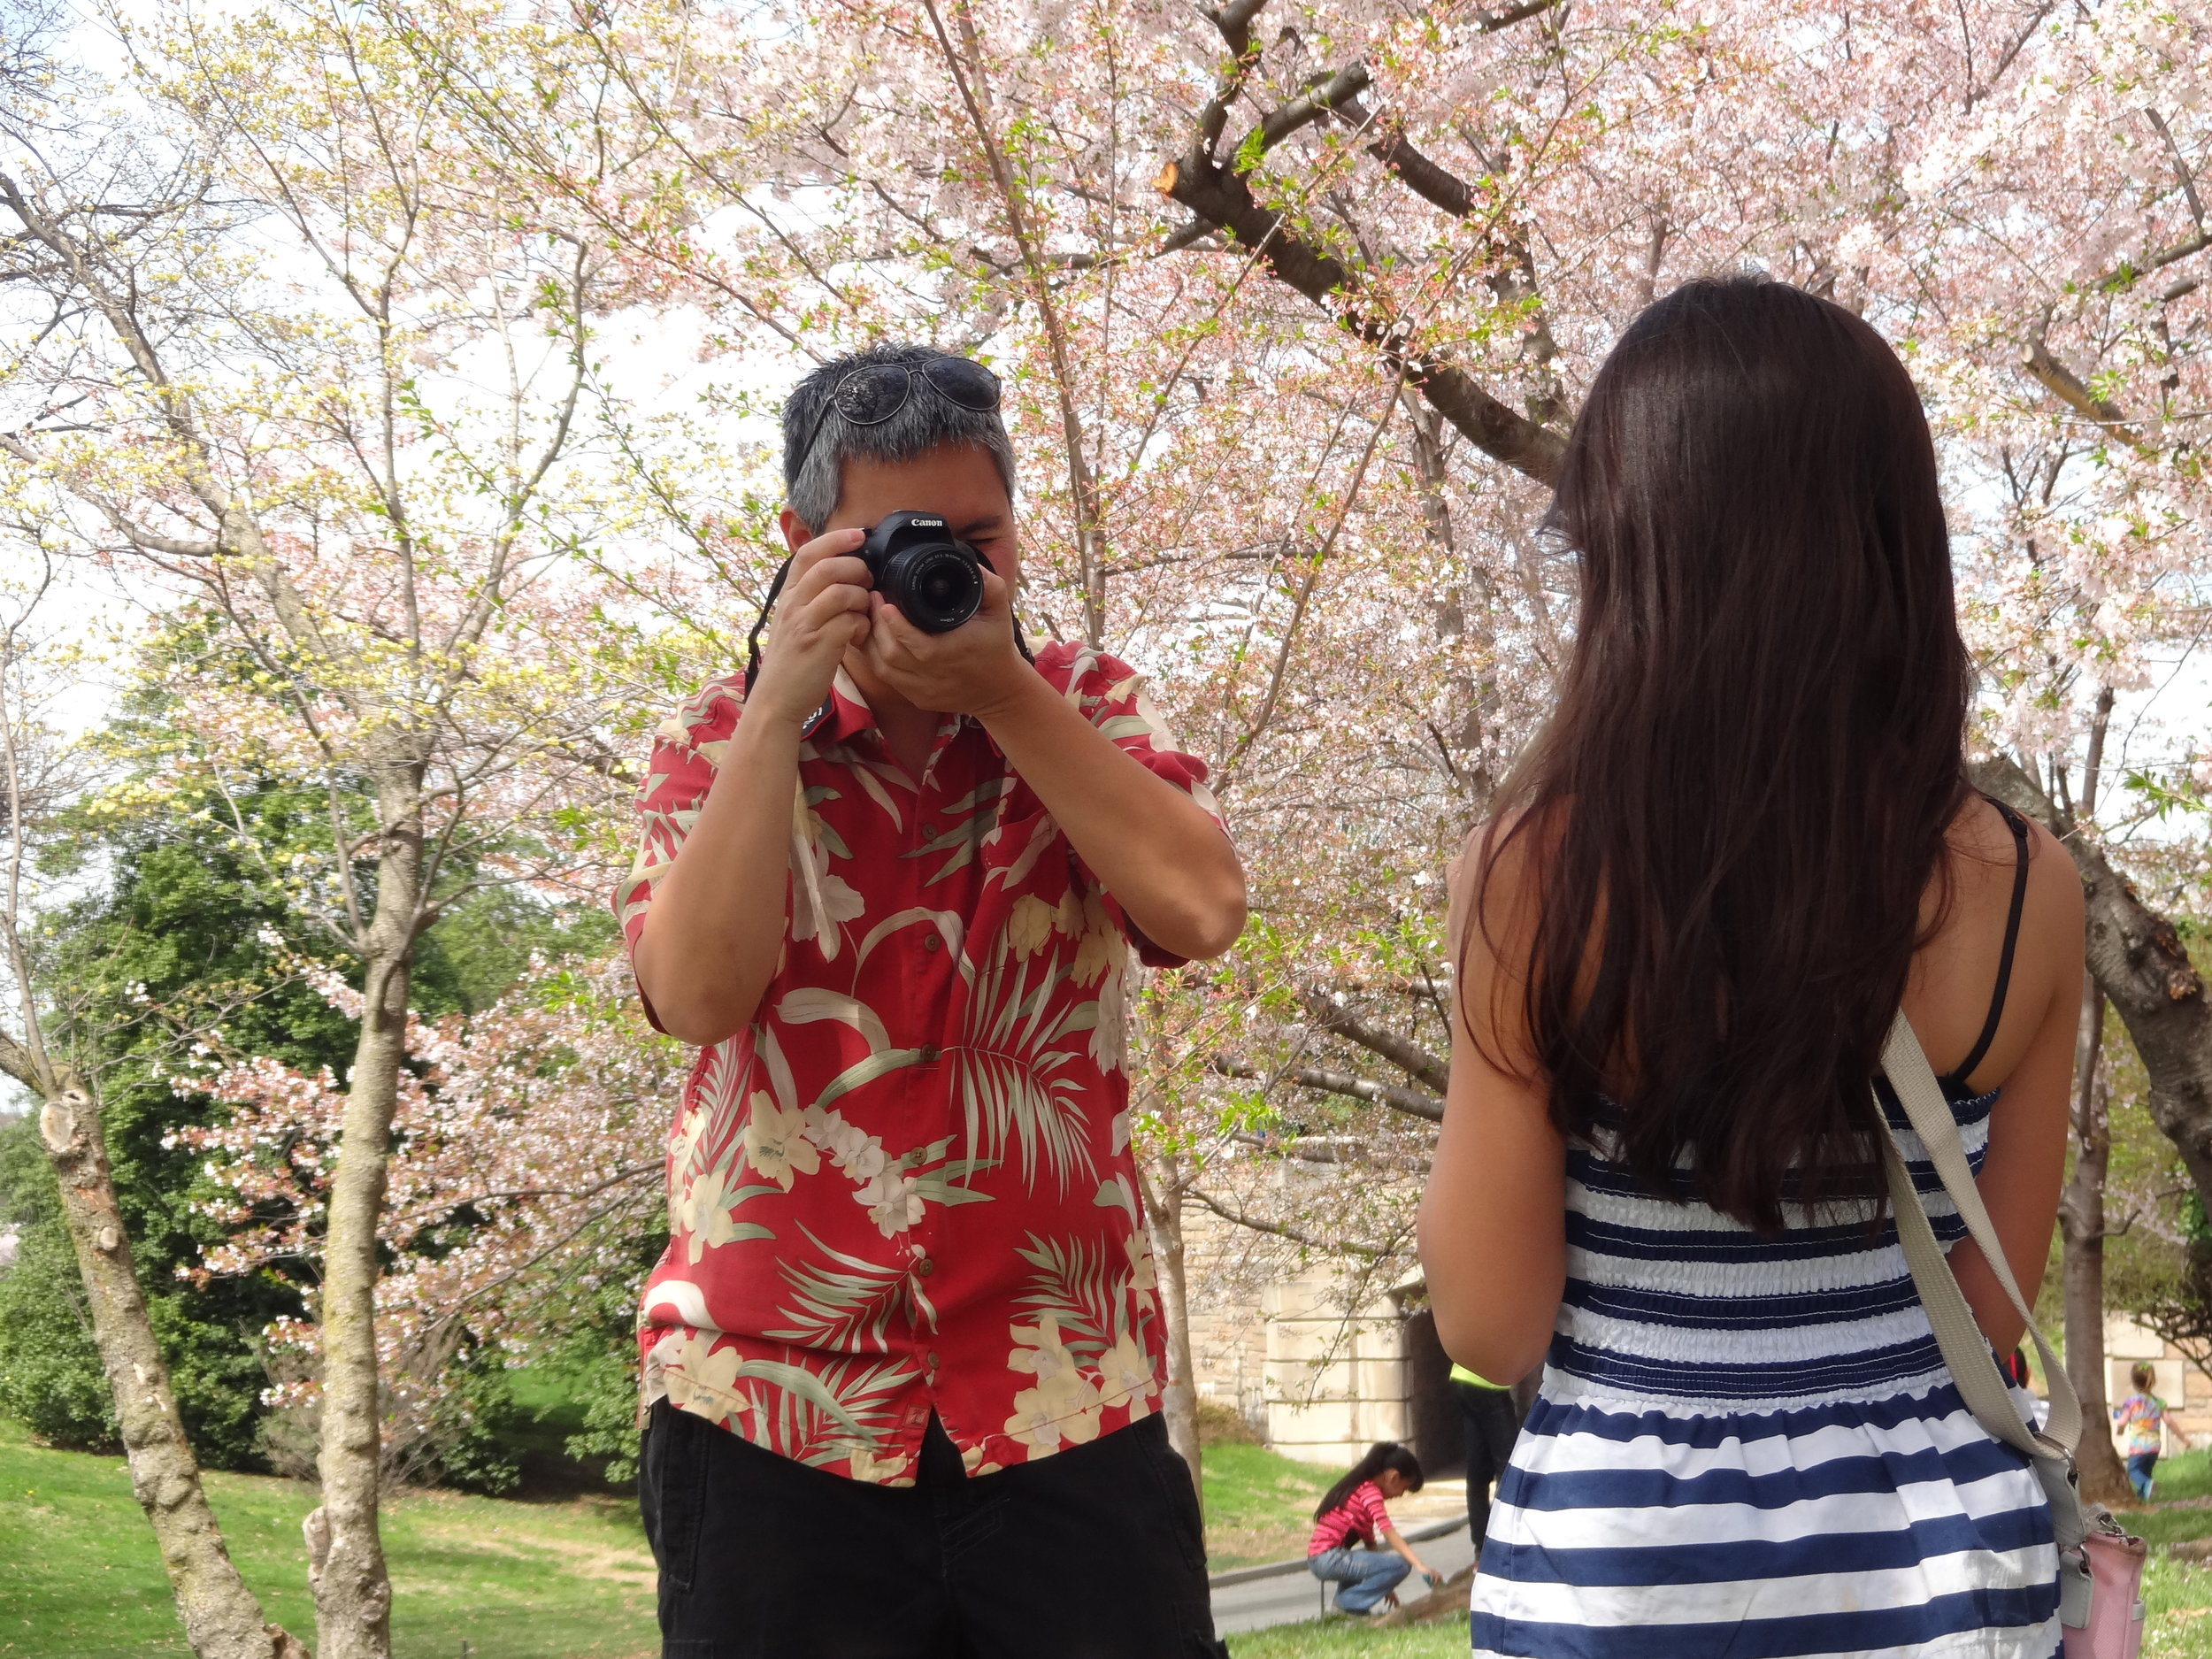 Striking a pose with the cherry blossoms